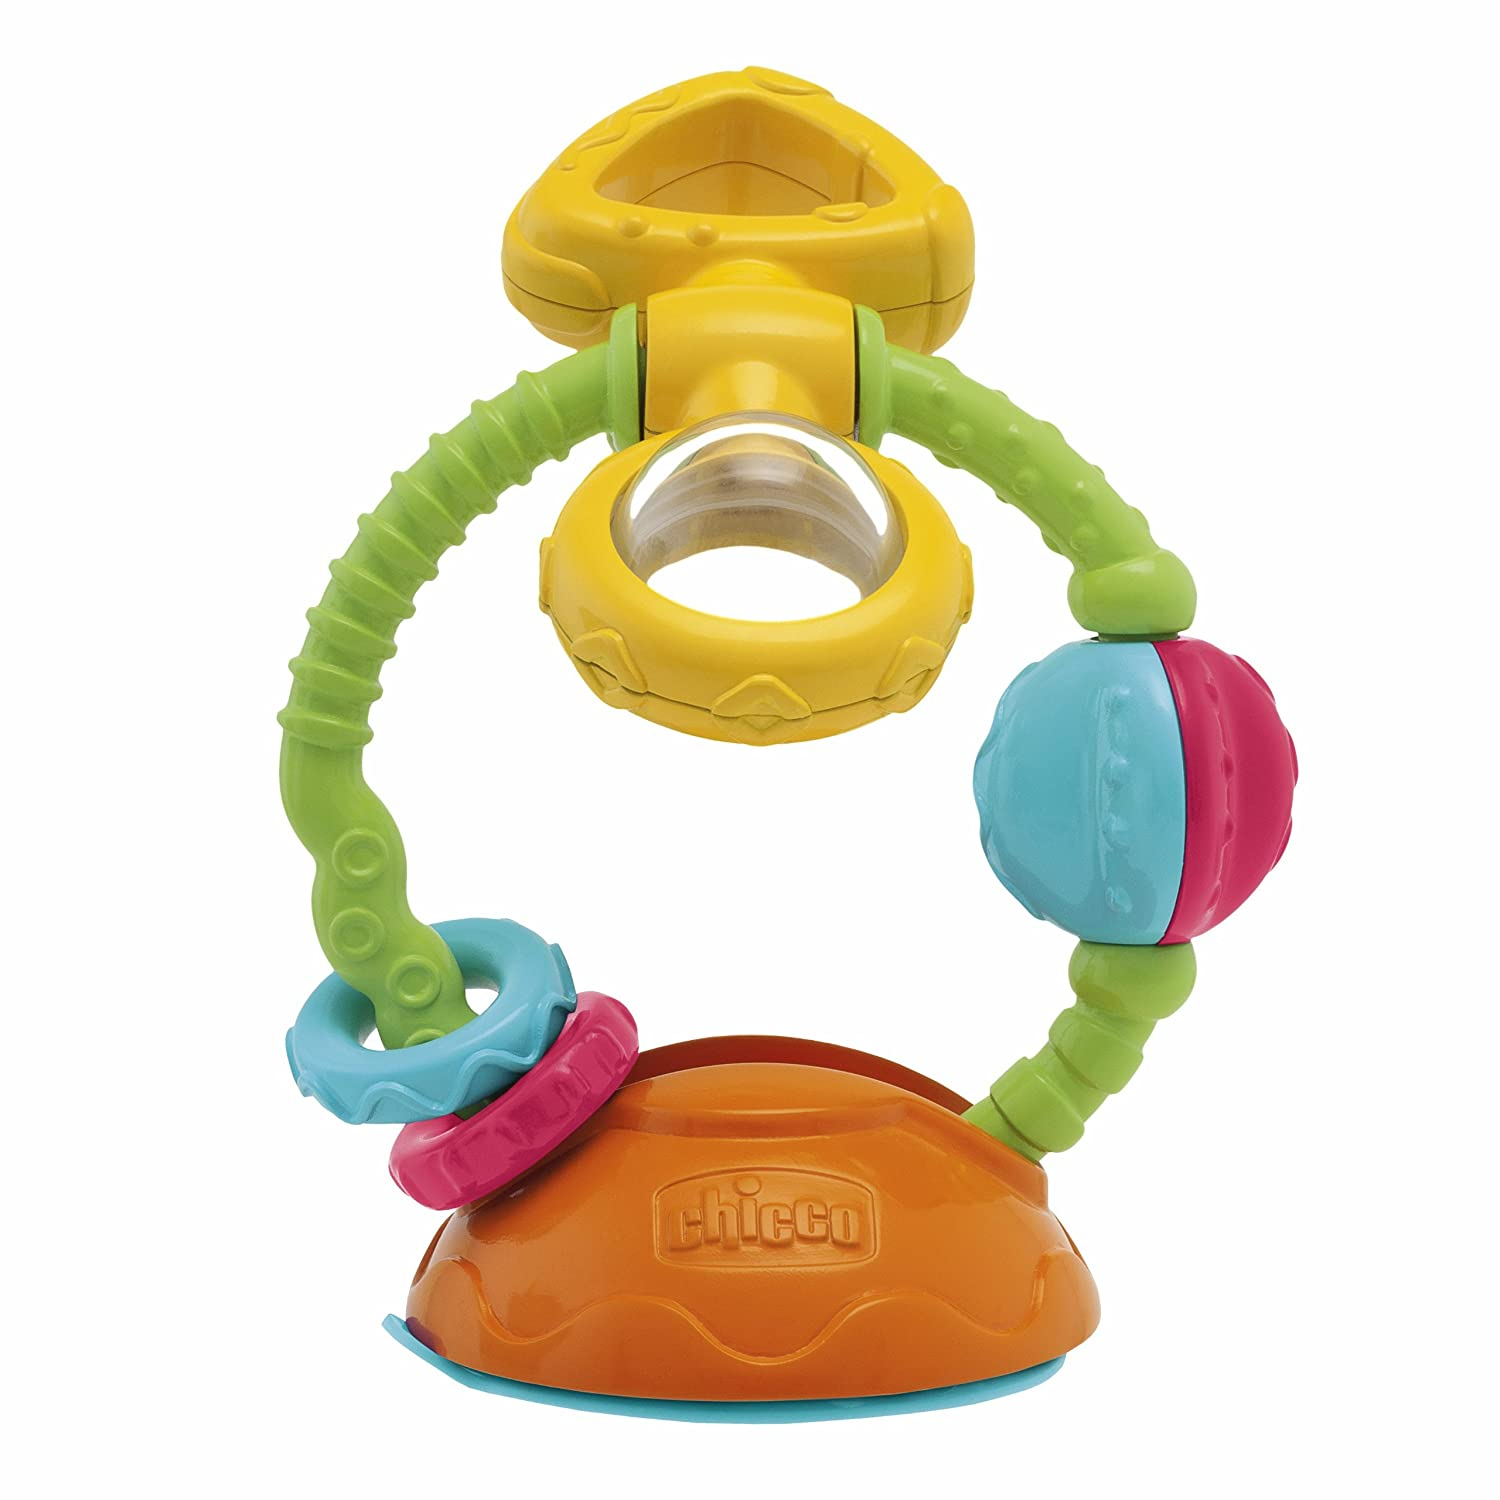 Chicco Touch and Spin Highchair Toy Amazon Baby